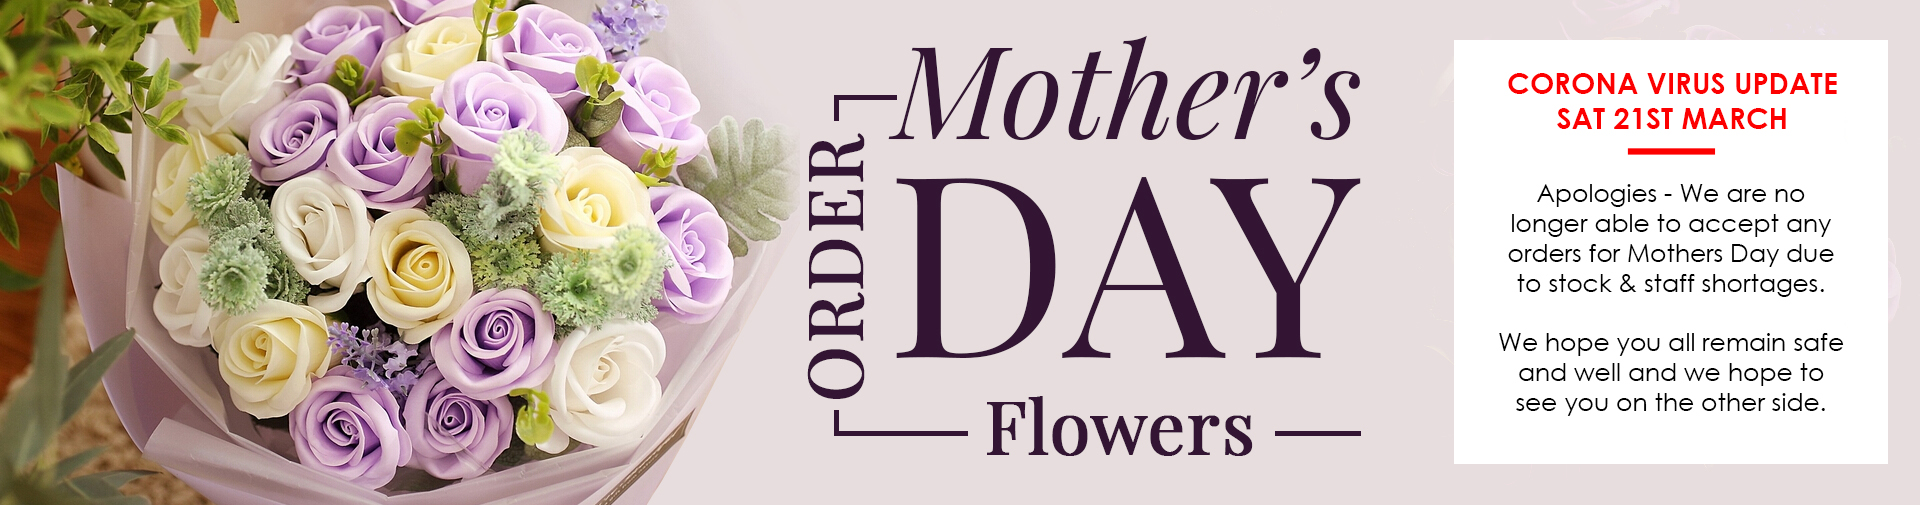 mothers day flowers offer banner